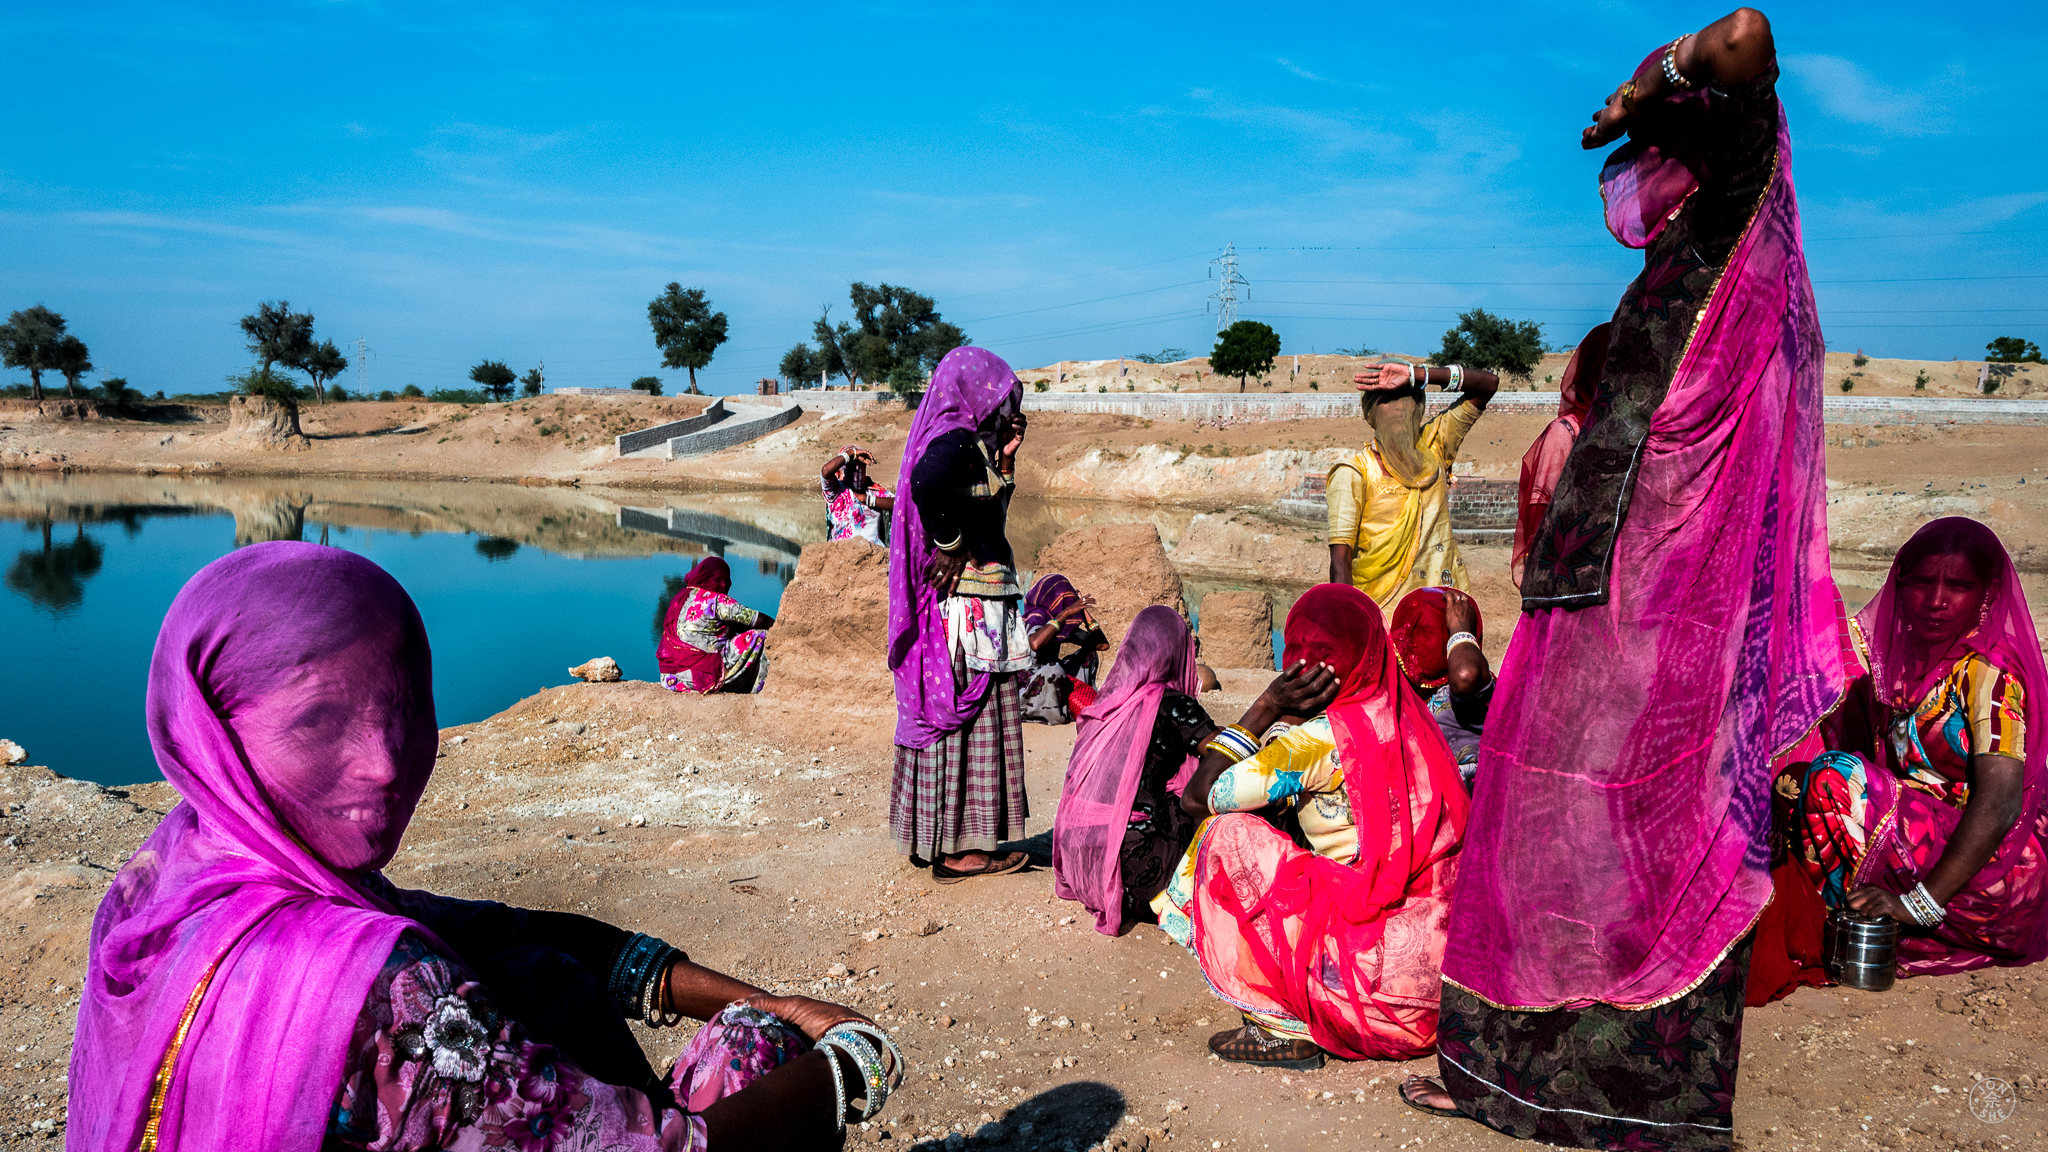 """The Ladies of the Lake"".  Rajahstan, India. January 2017. © Jon She. Leica Q, Leica Summilux 28mm f/1.7 ASPH. We came across this group of lady construction workers in their traditional colorful saris working on a civic project just outside Jodhpur."